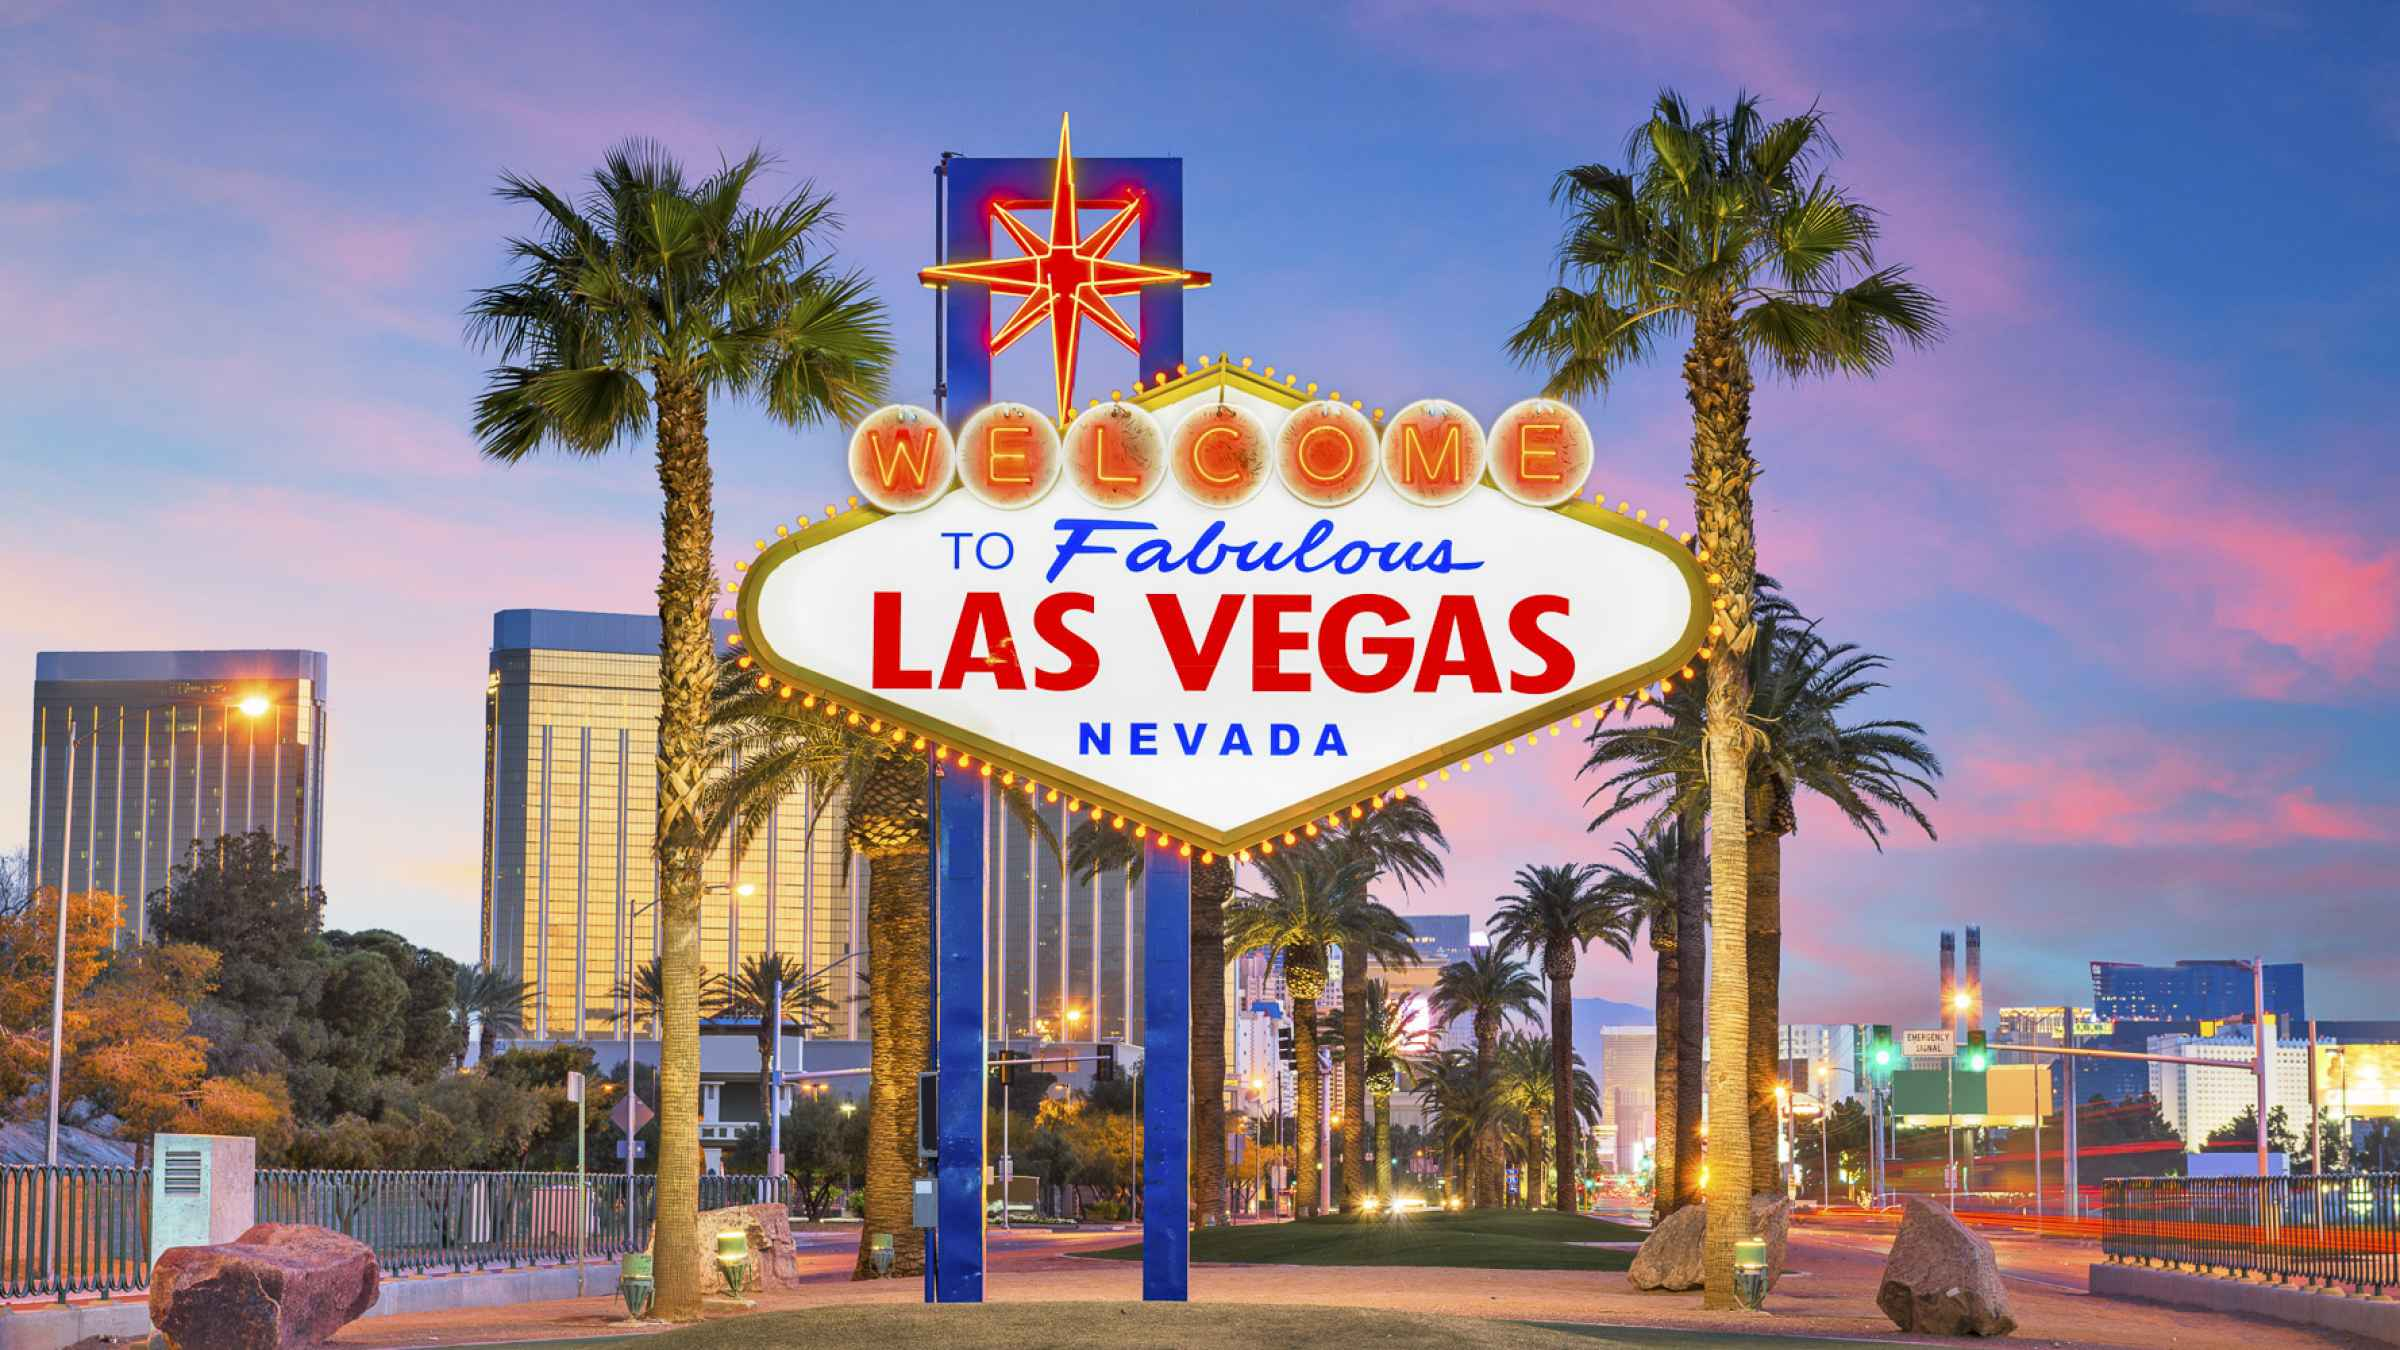 Top-Rated Night Tours in Las Vegas - Best Things to Do 2021 | GetYourGuide